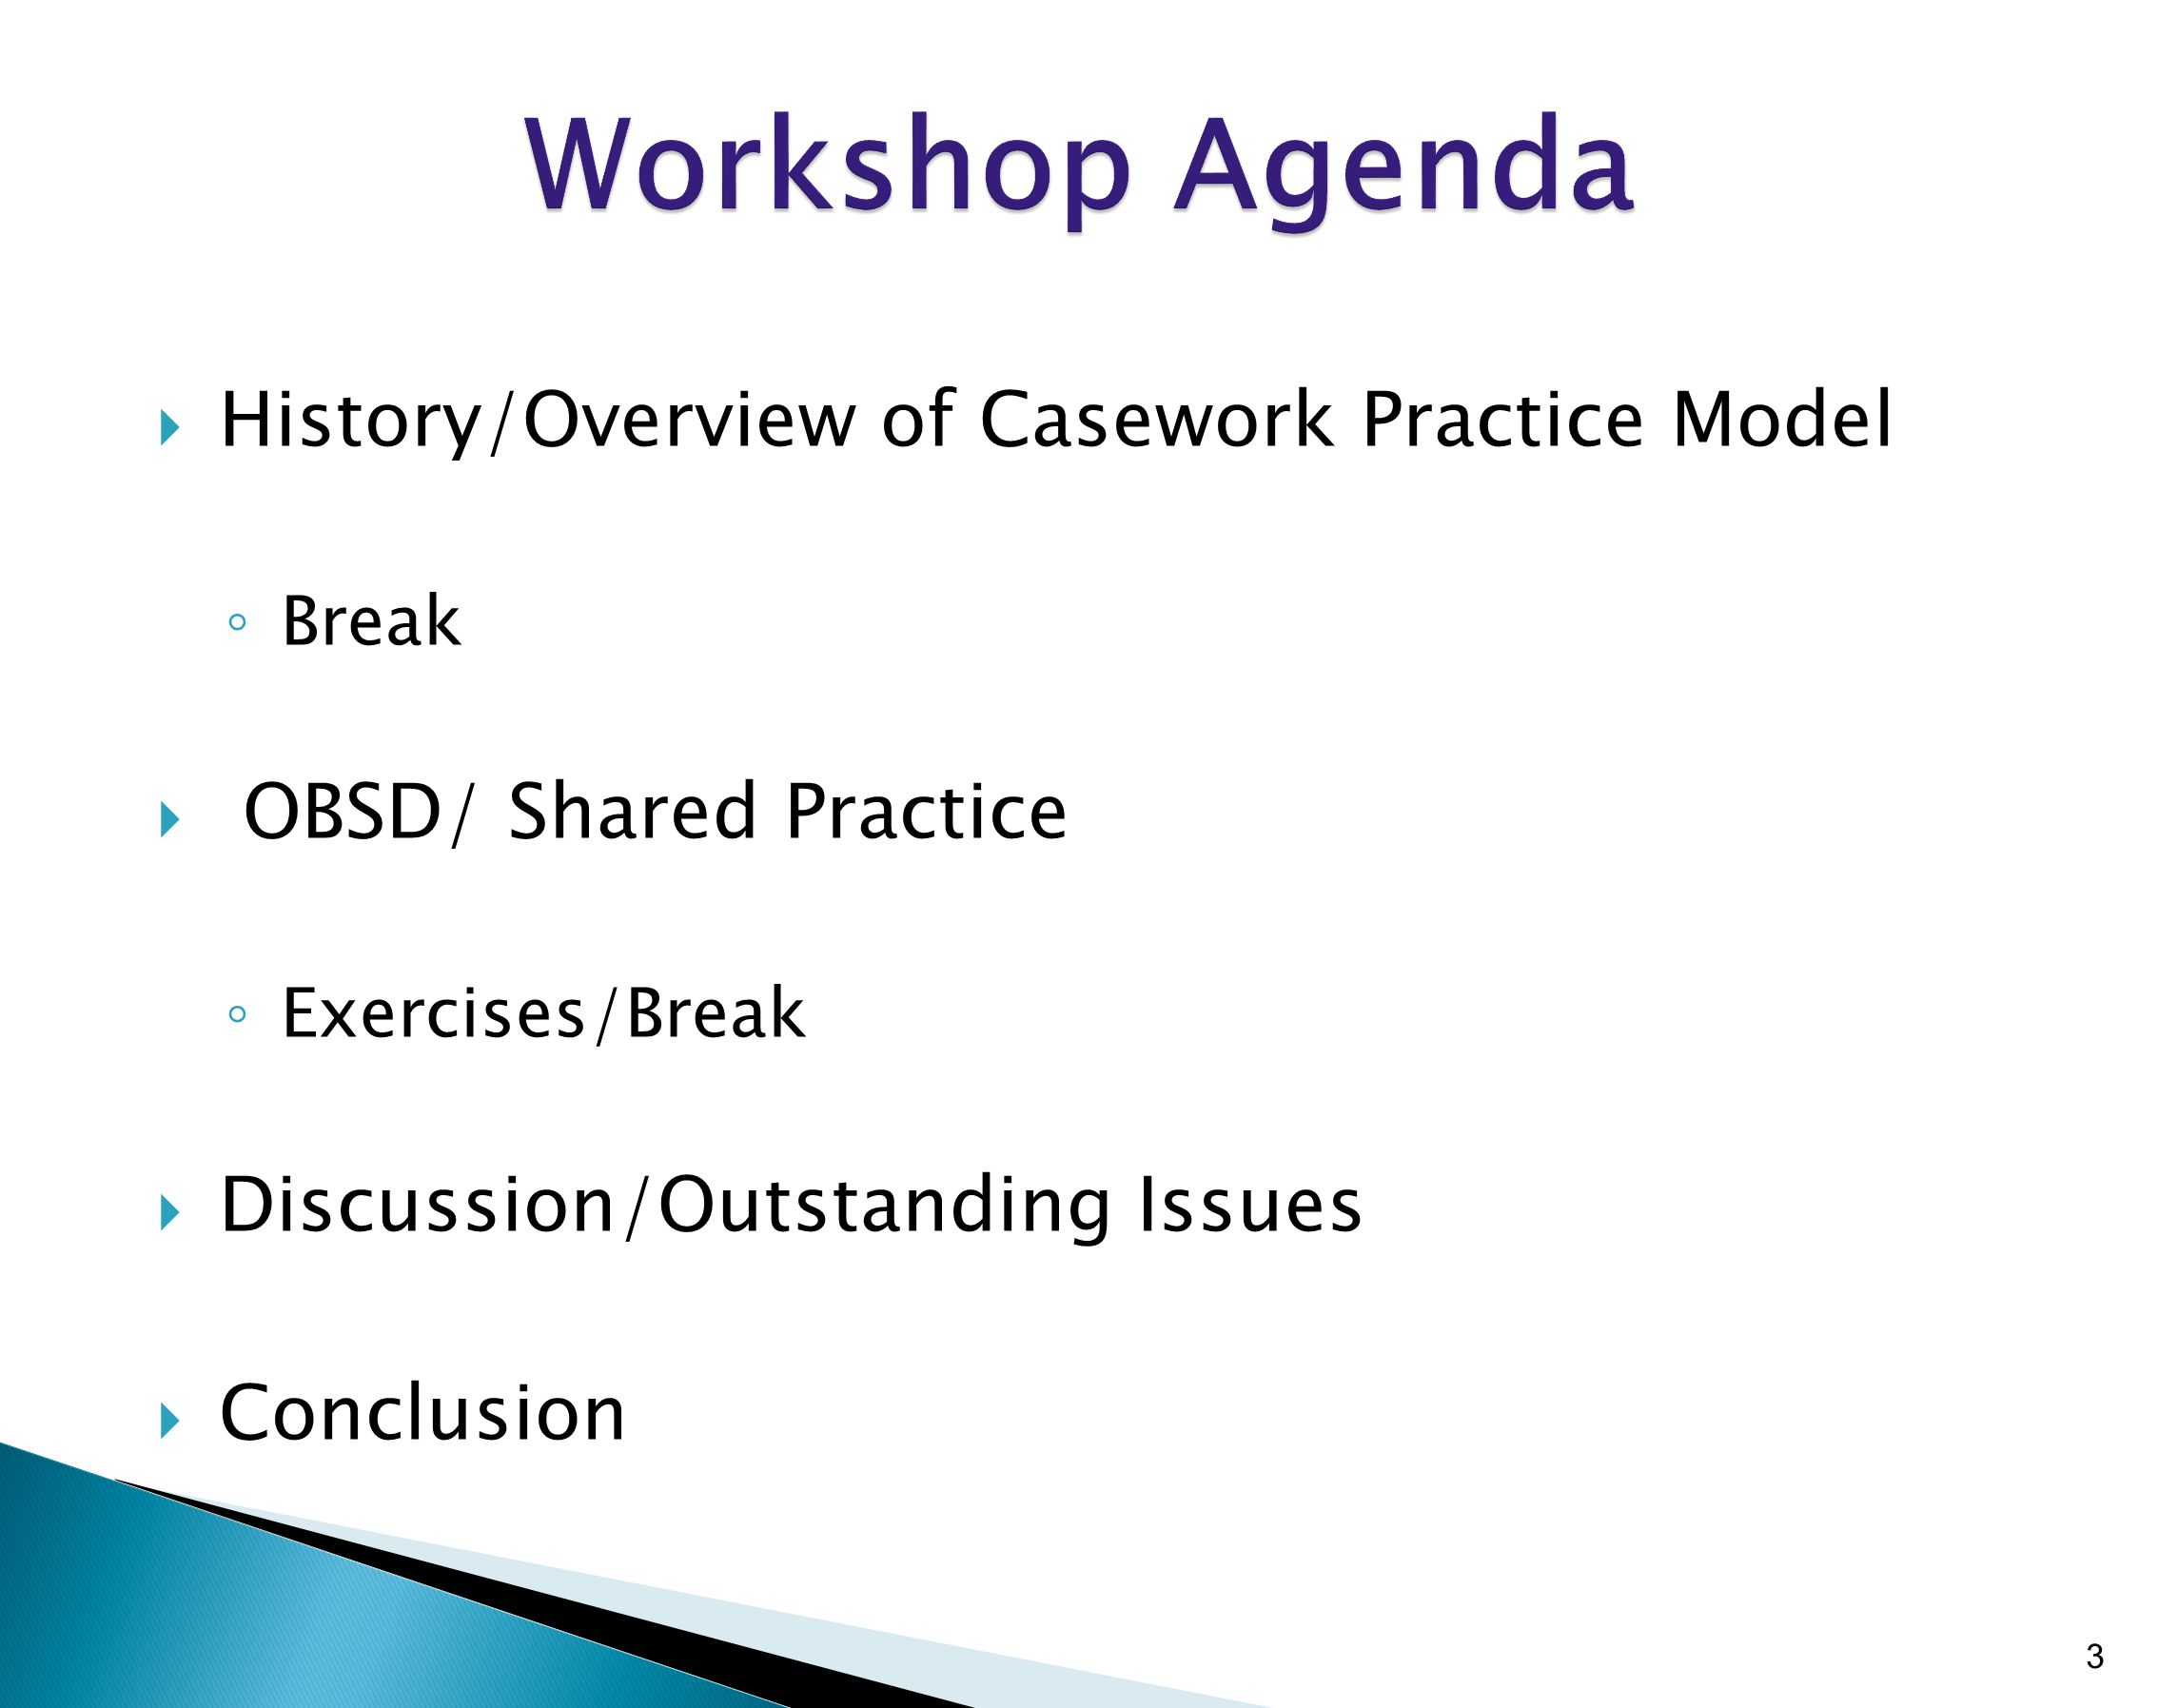  History/Overview of Casework Practice Model ◦ Break  OBSD/ Shared Practice ◦ Exercises/Break  Discussion/Outstanding Issues  Conclusion 3